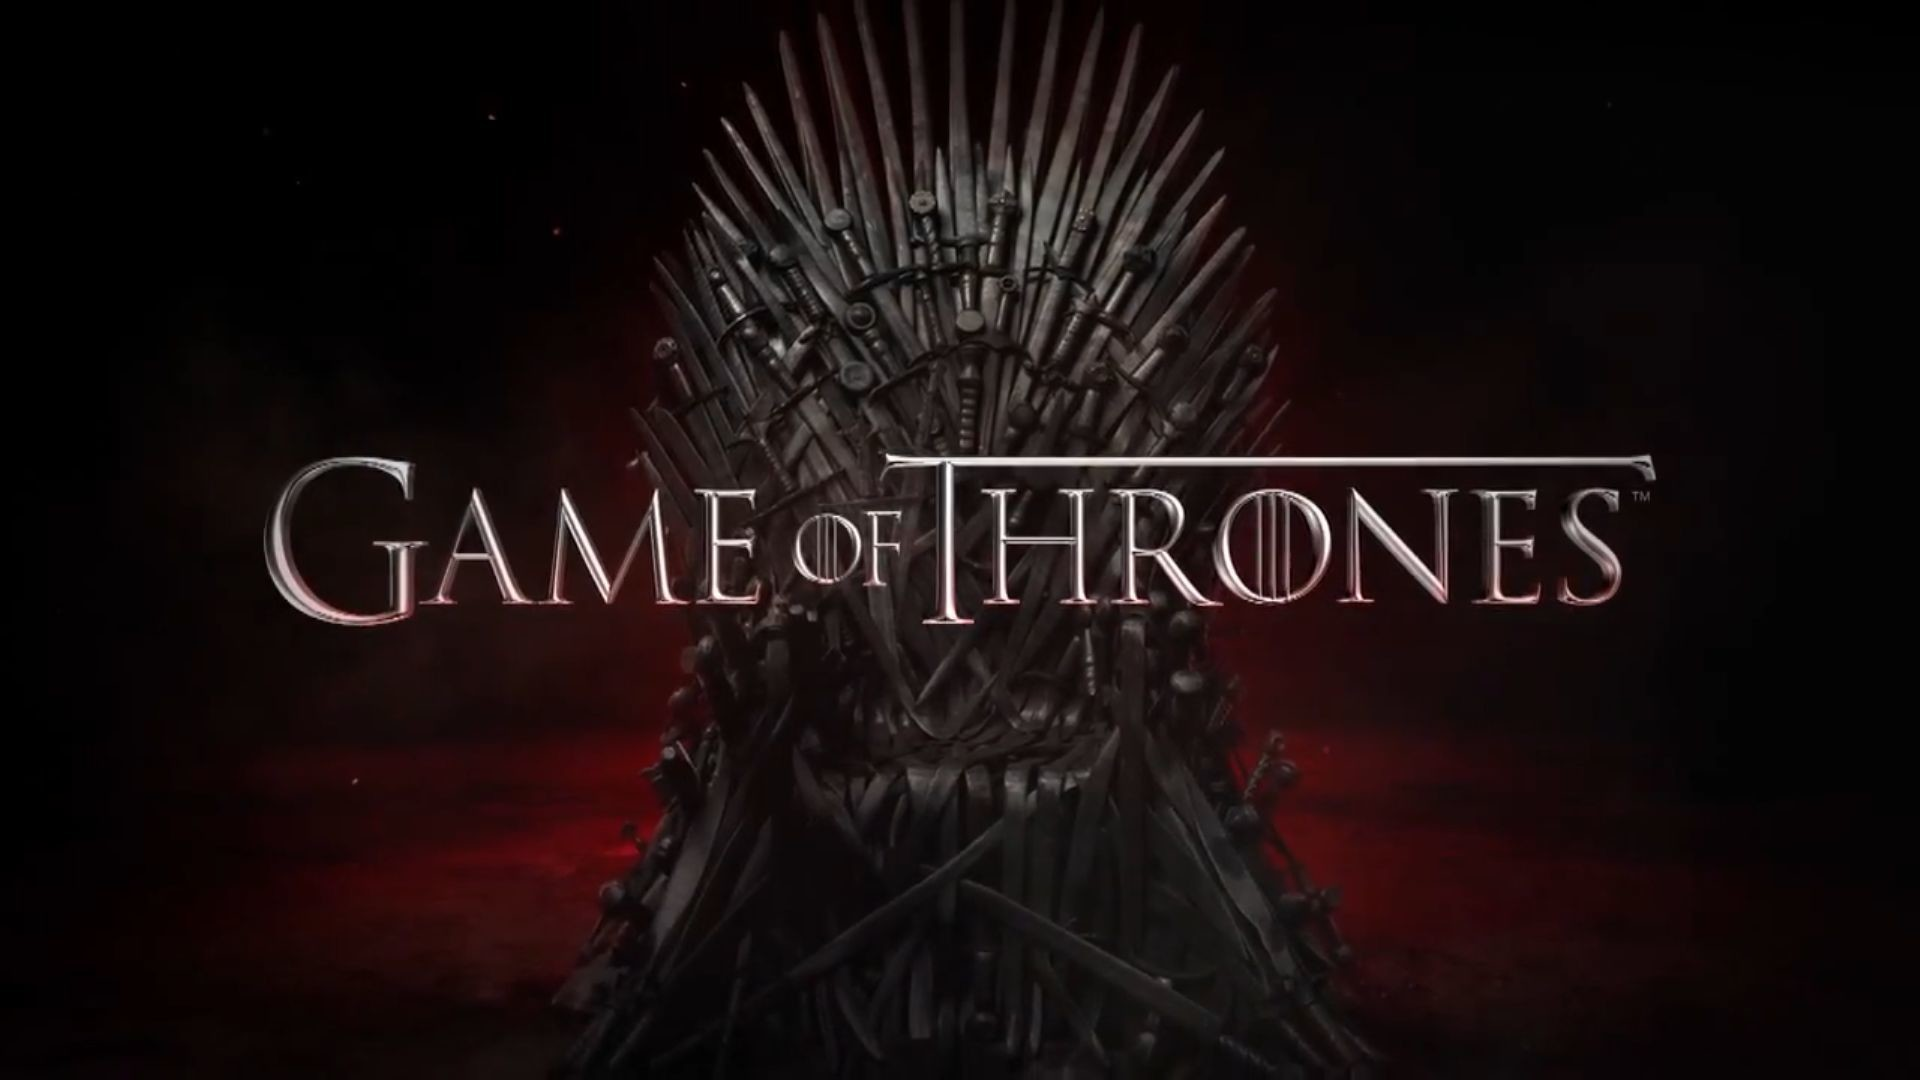 9033wfzgot Game Of Thrones Wallpaper Iphone - Game Of Thrones 800 200 - HD Wallpaper